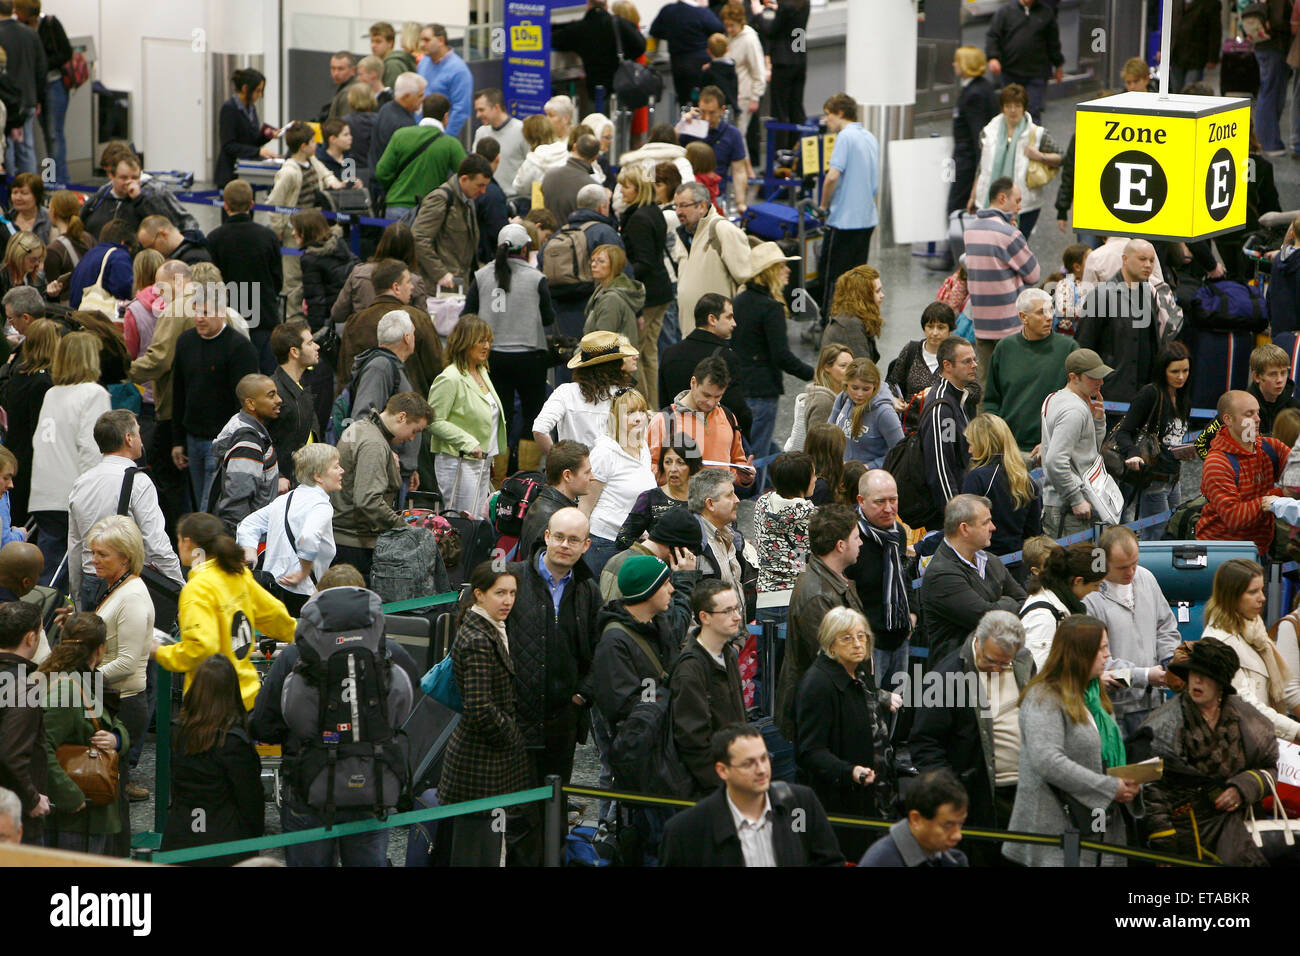 Travelers in the South terminal of London's Gatwick Airport queue to check in.Picture by James BoardmanStock Photo